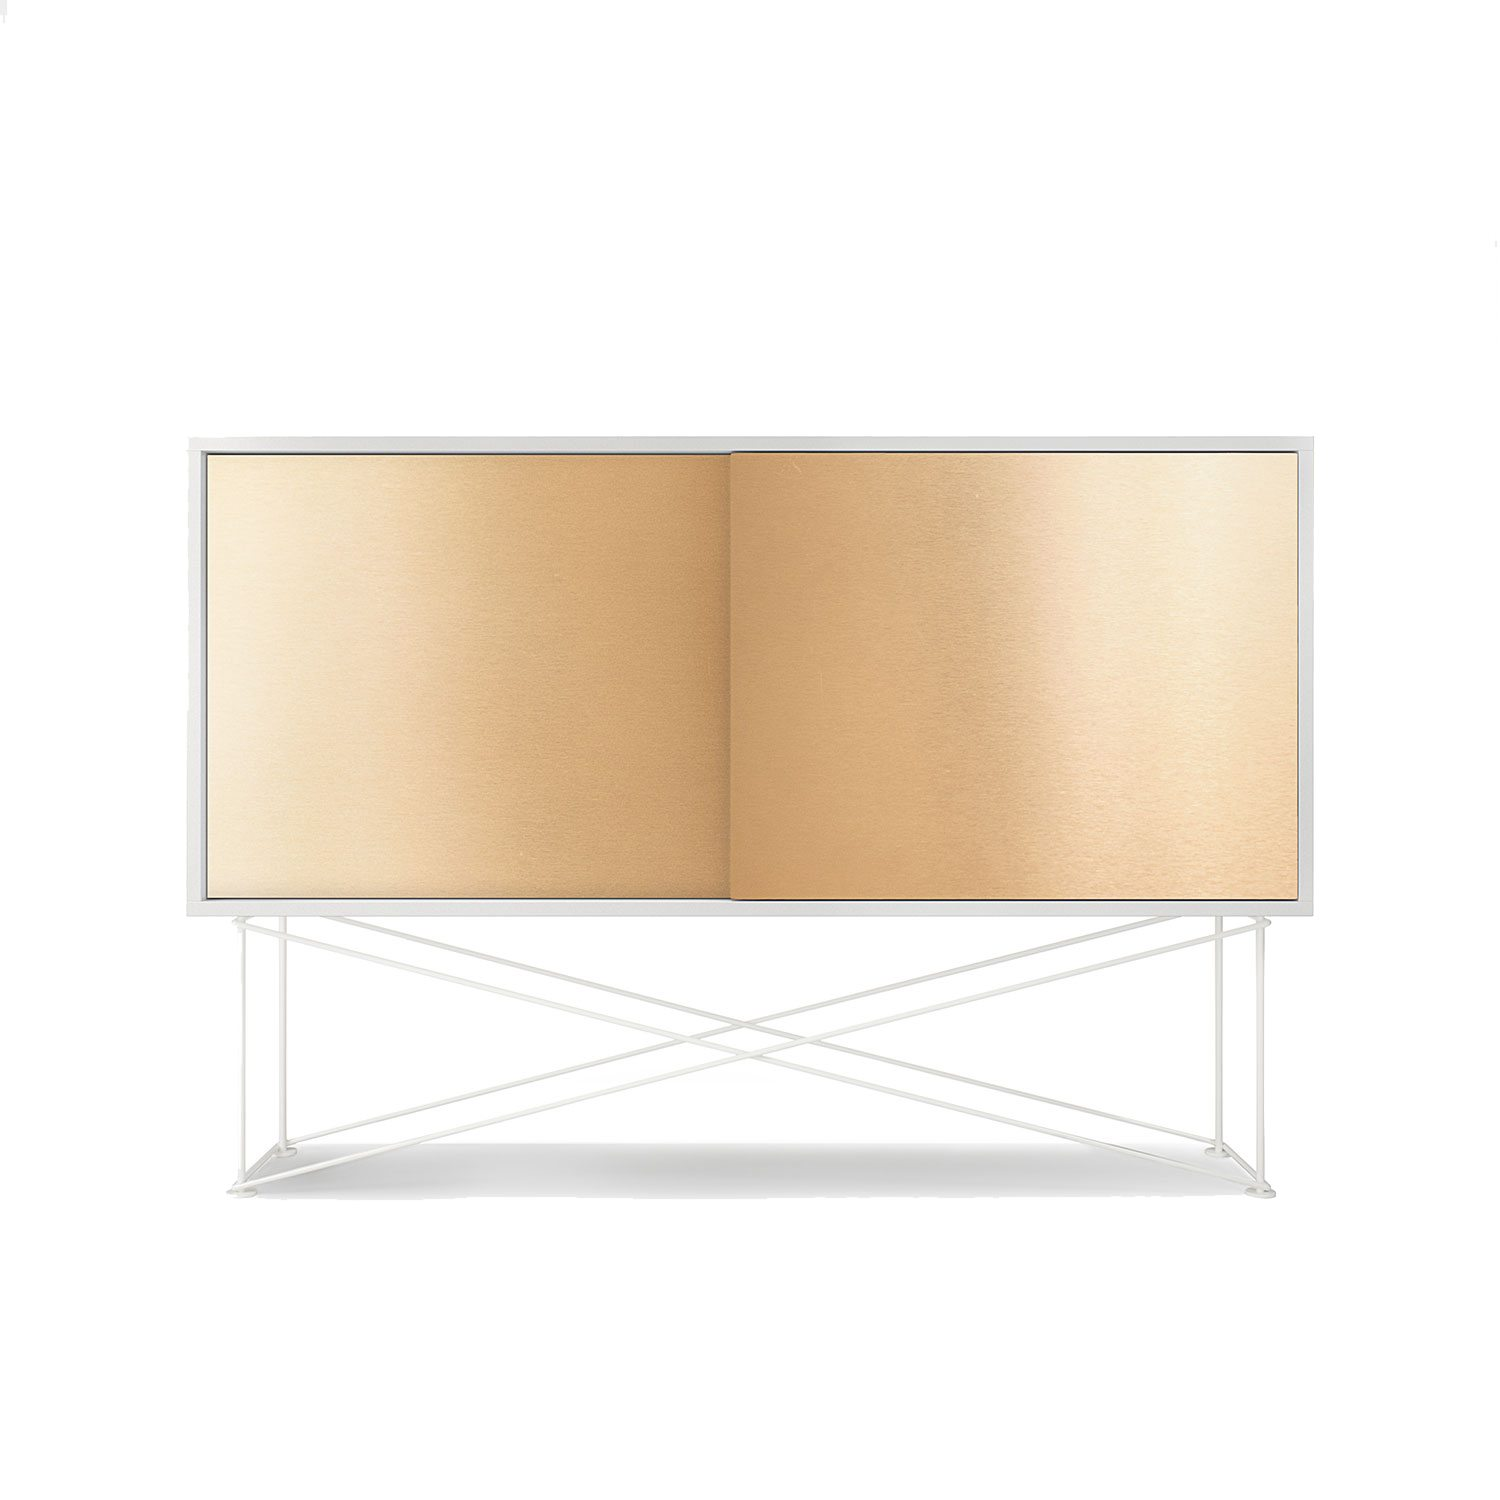 Vogue sideboard 136h, vit/2B/vit